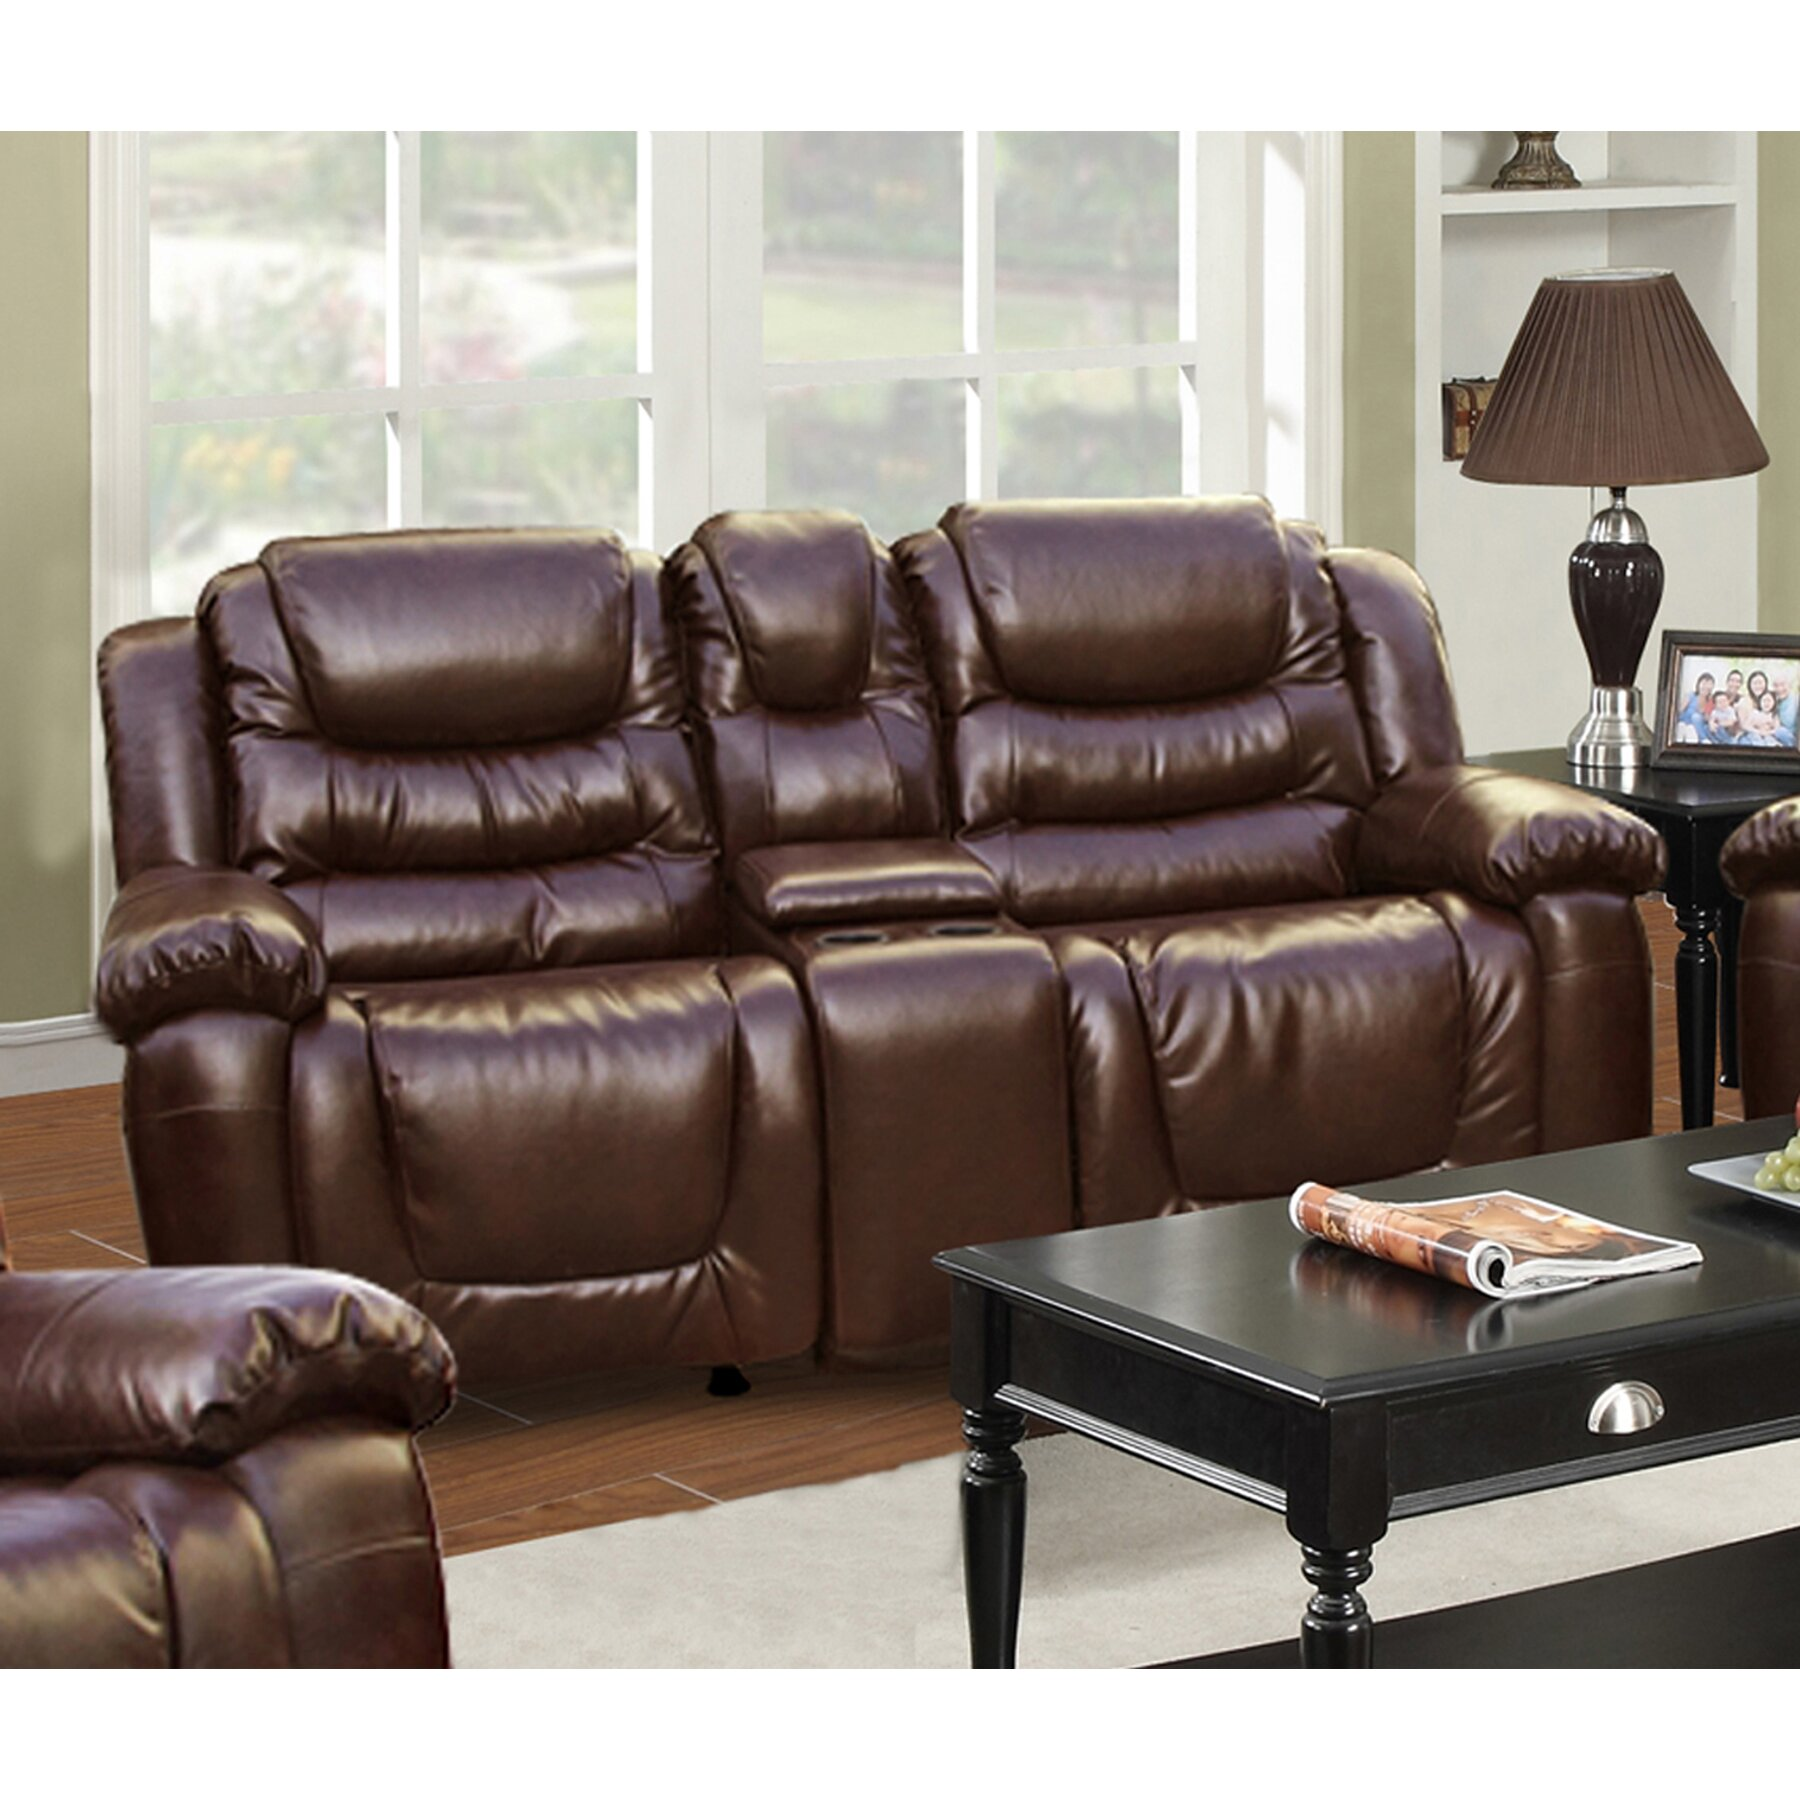 Beverly fine furniture ottawa rocking and reclining loveseat reviews wayfair Rocking loveseats